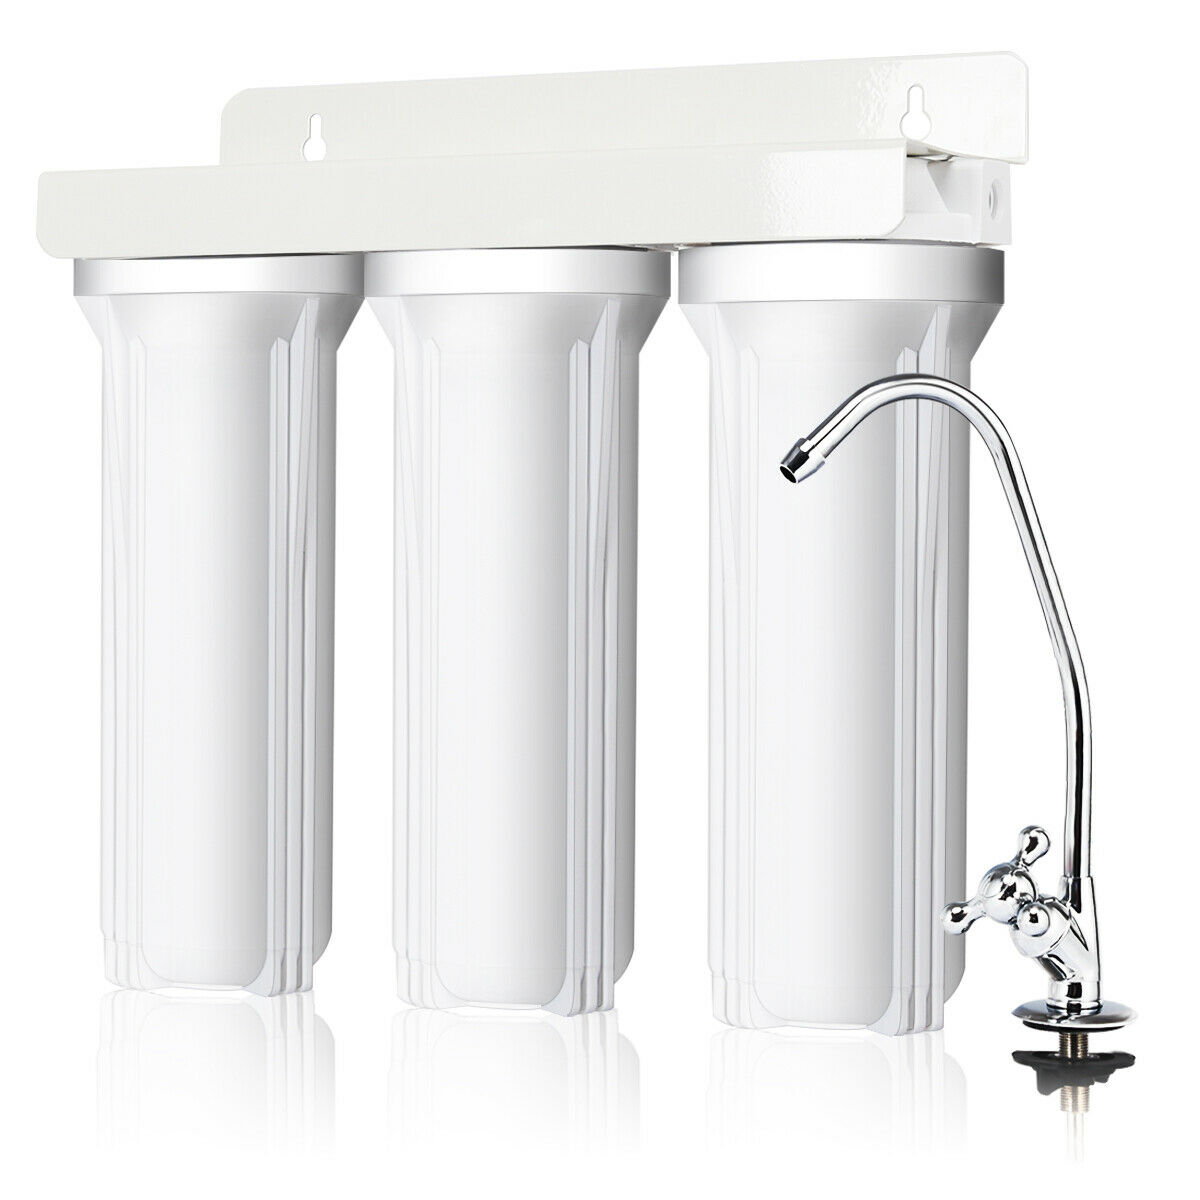 goplus 3 stage under sink water filter system water filtration with chromed faucet new